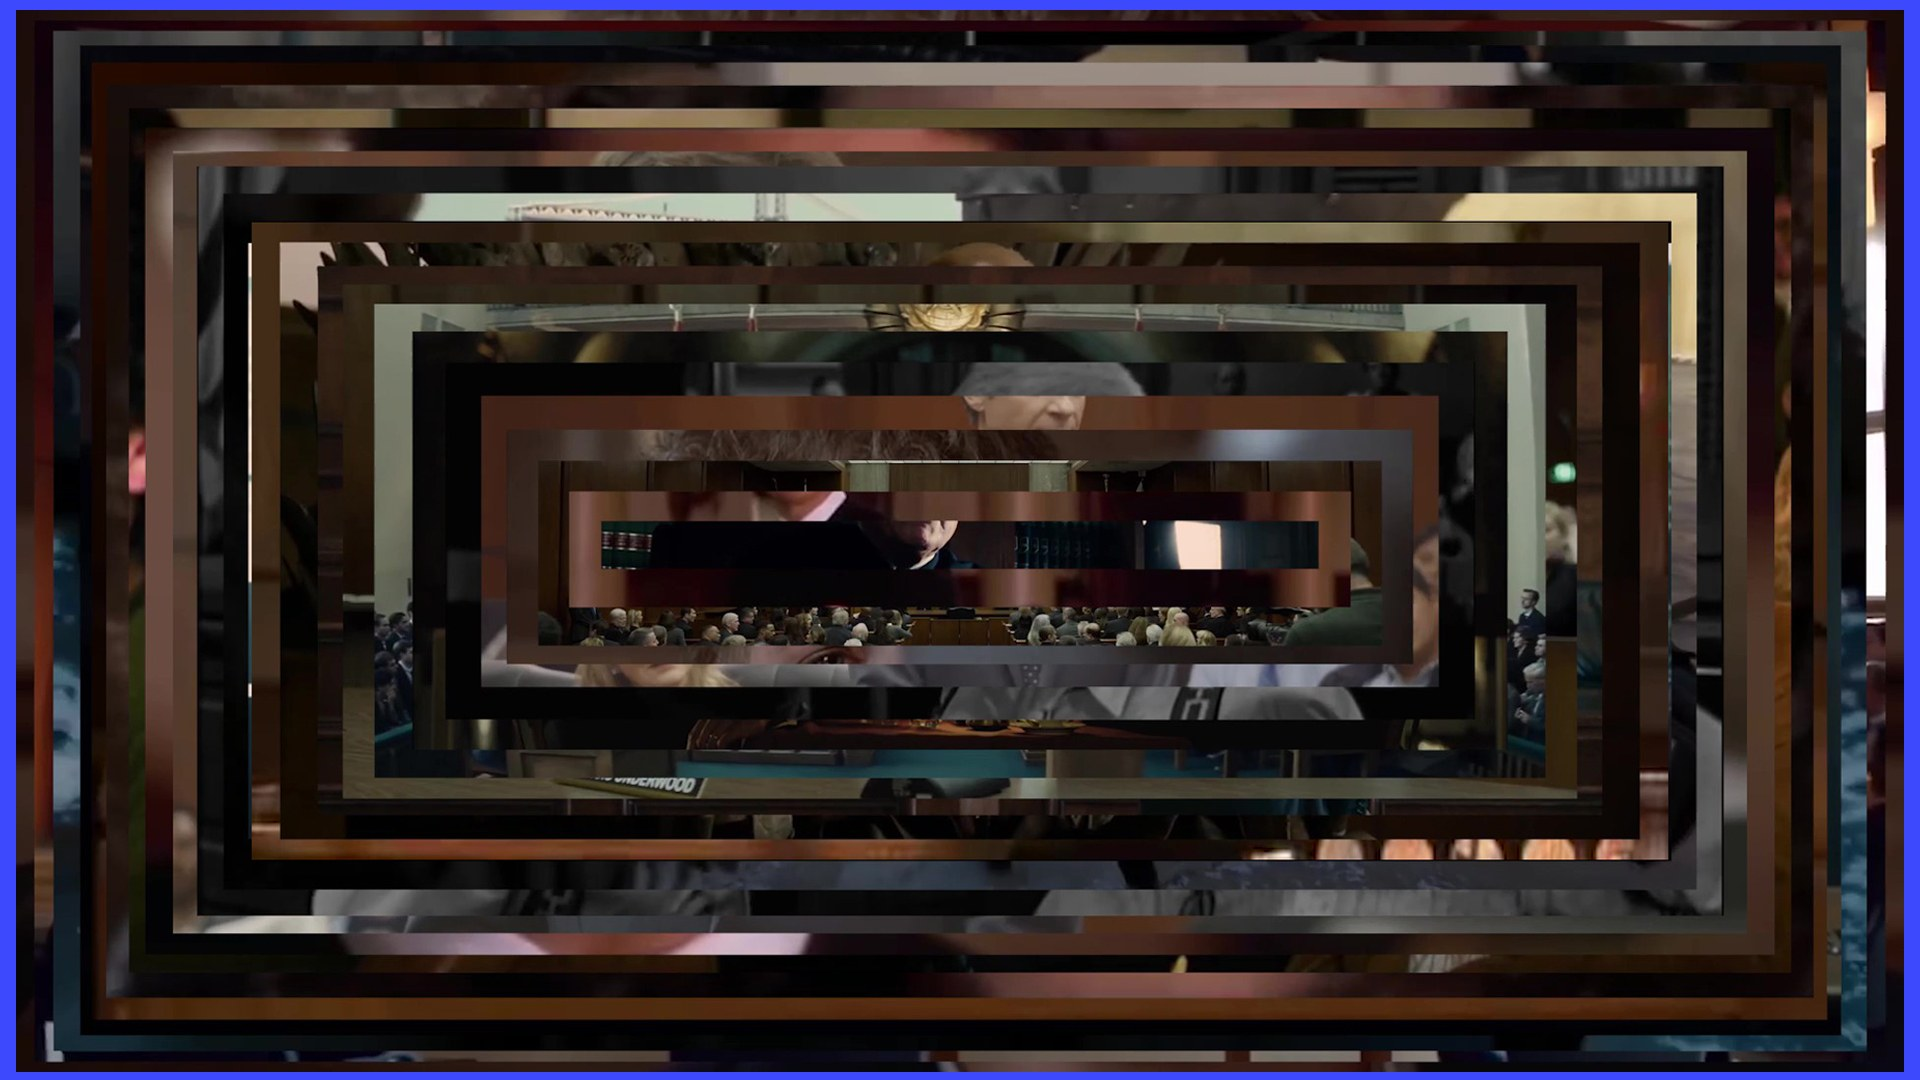 CINEMATIC REPRESENTATION OF THE COURTROOM (STILL)